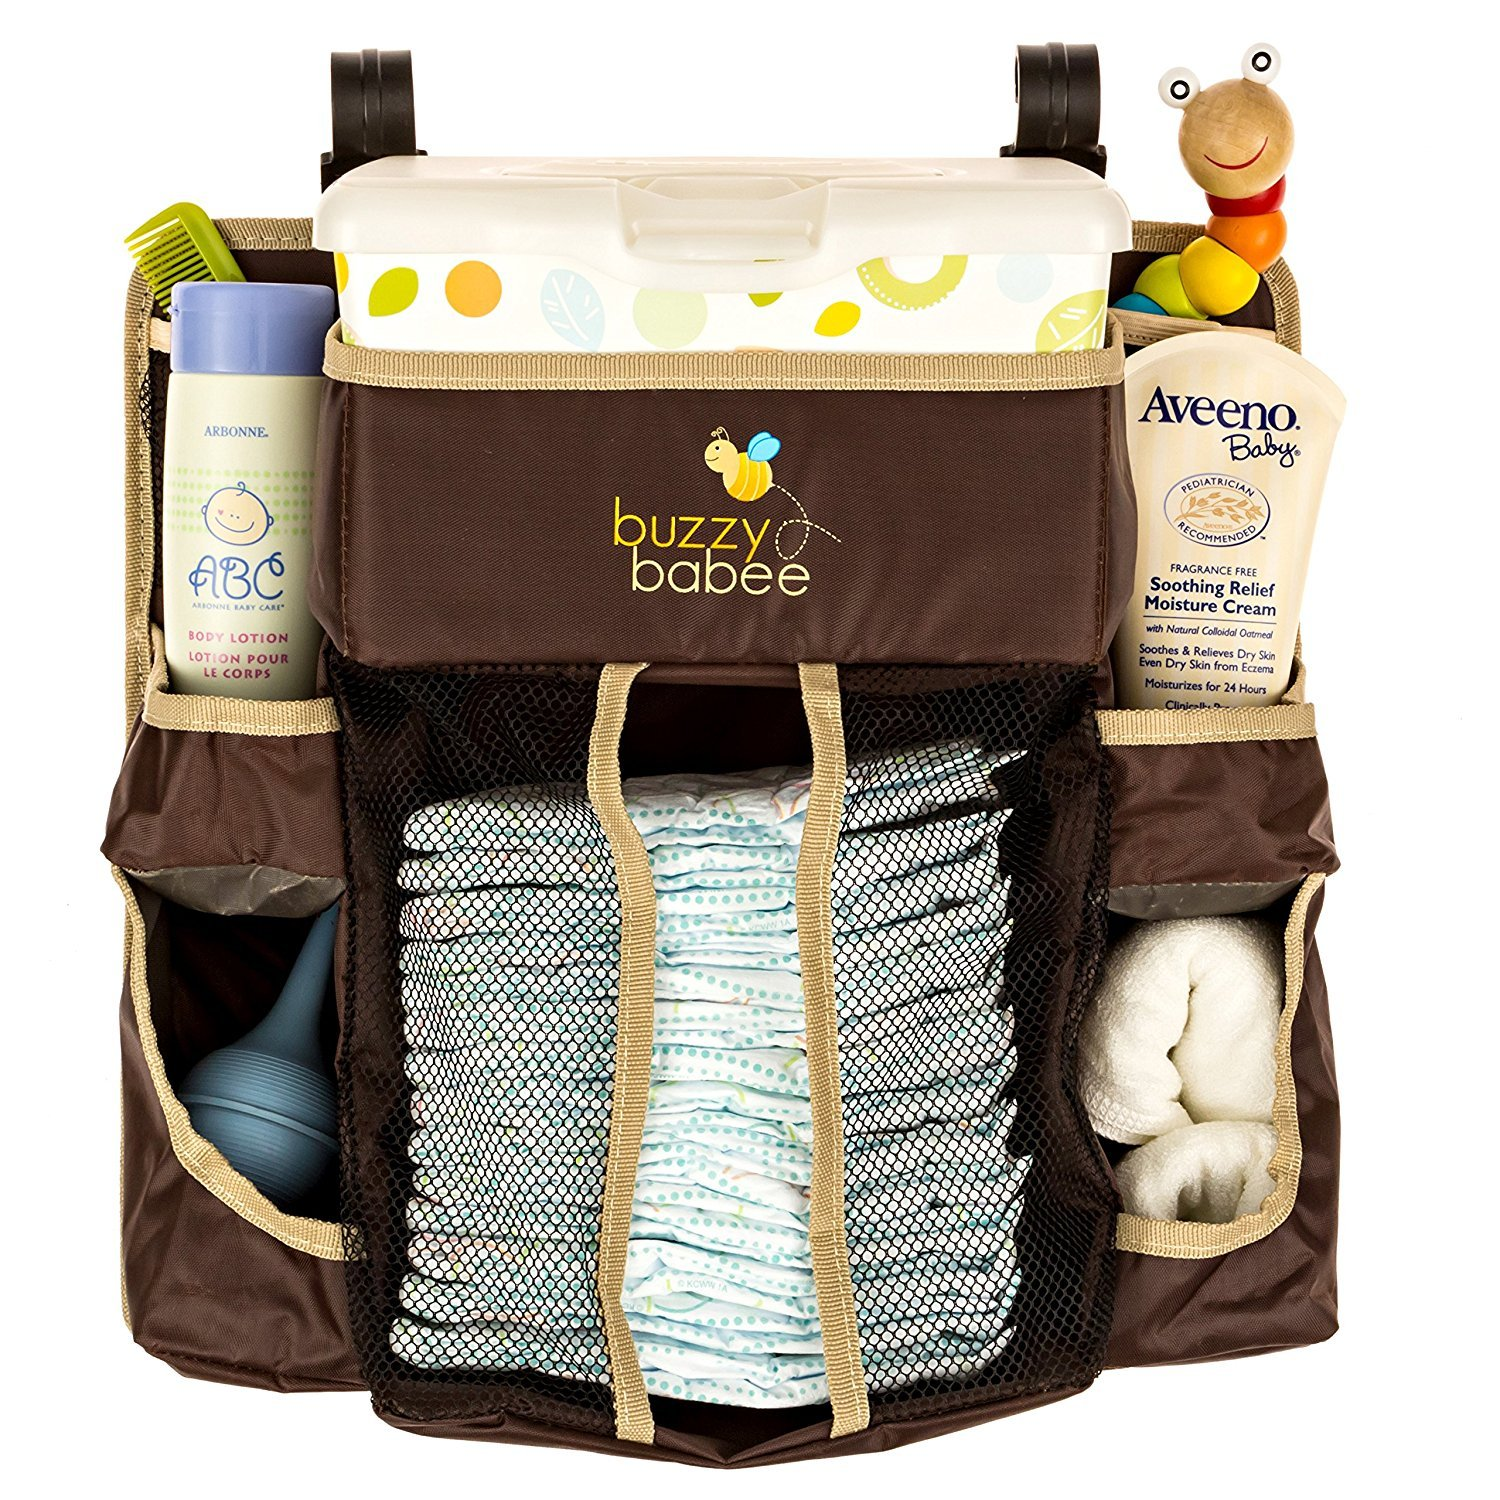 Buzzy Babee Diaper Change Organizer, Brown/Coffee Perfect Diaper Caddy & Playard Organizer BB-DCO1